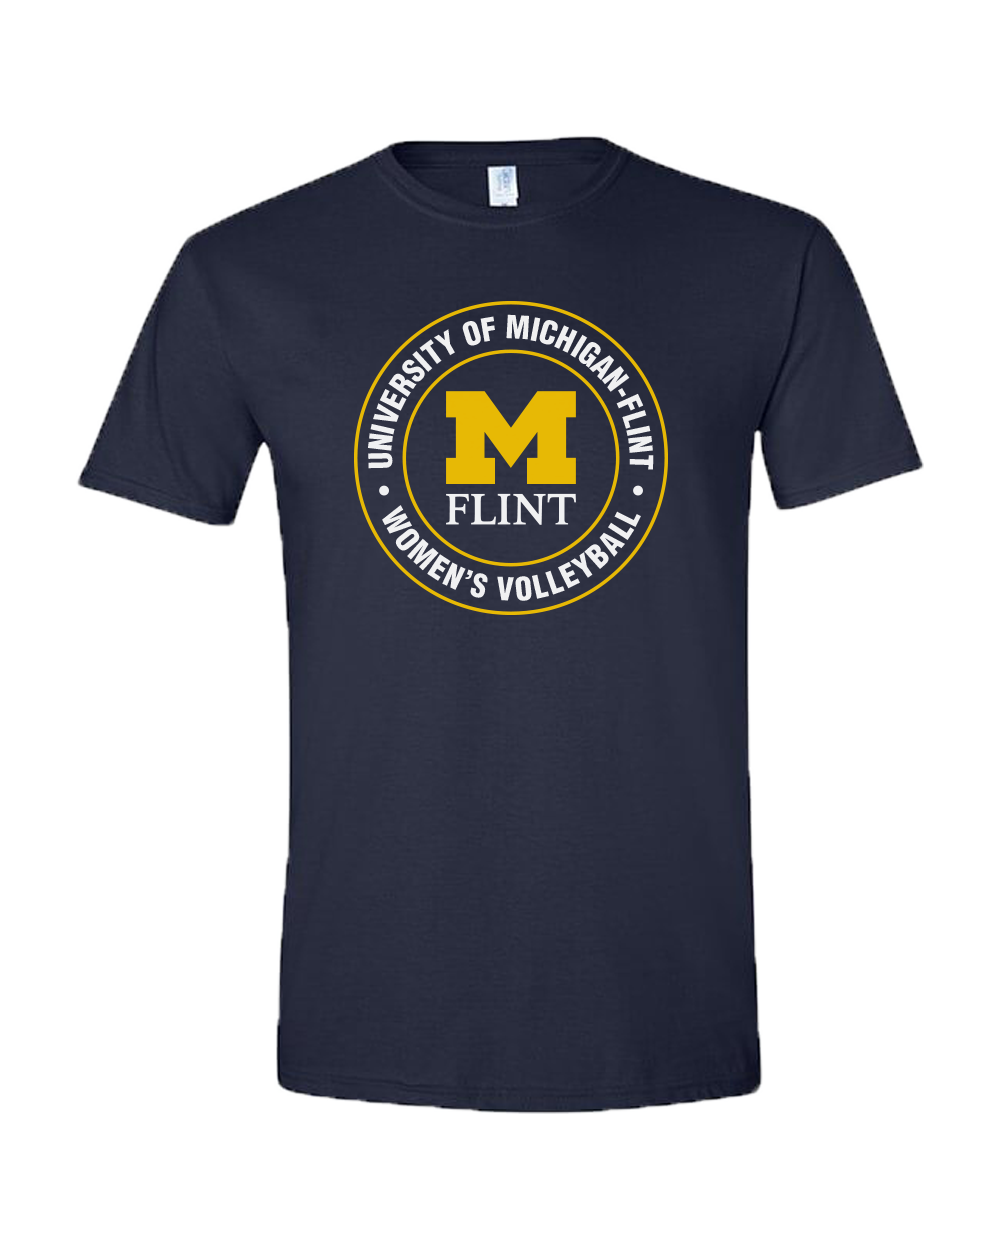 UNISEX UofM Circle Design Navy Short Sleeve Tee